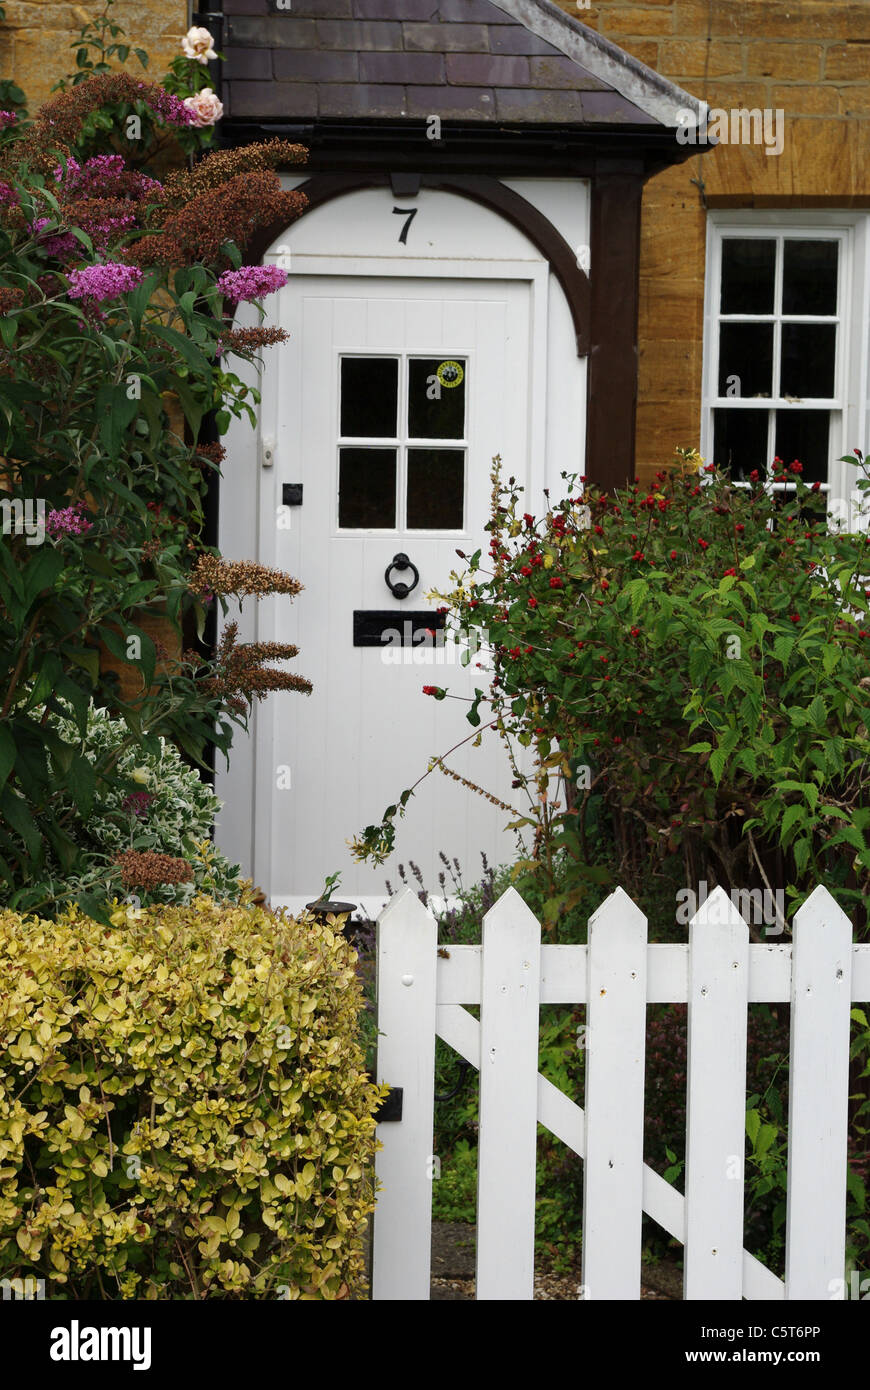 White gate and door of a country cottage in the village of Sywell, UK - Stock Image